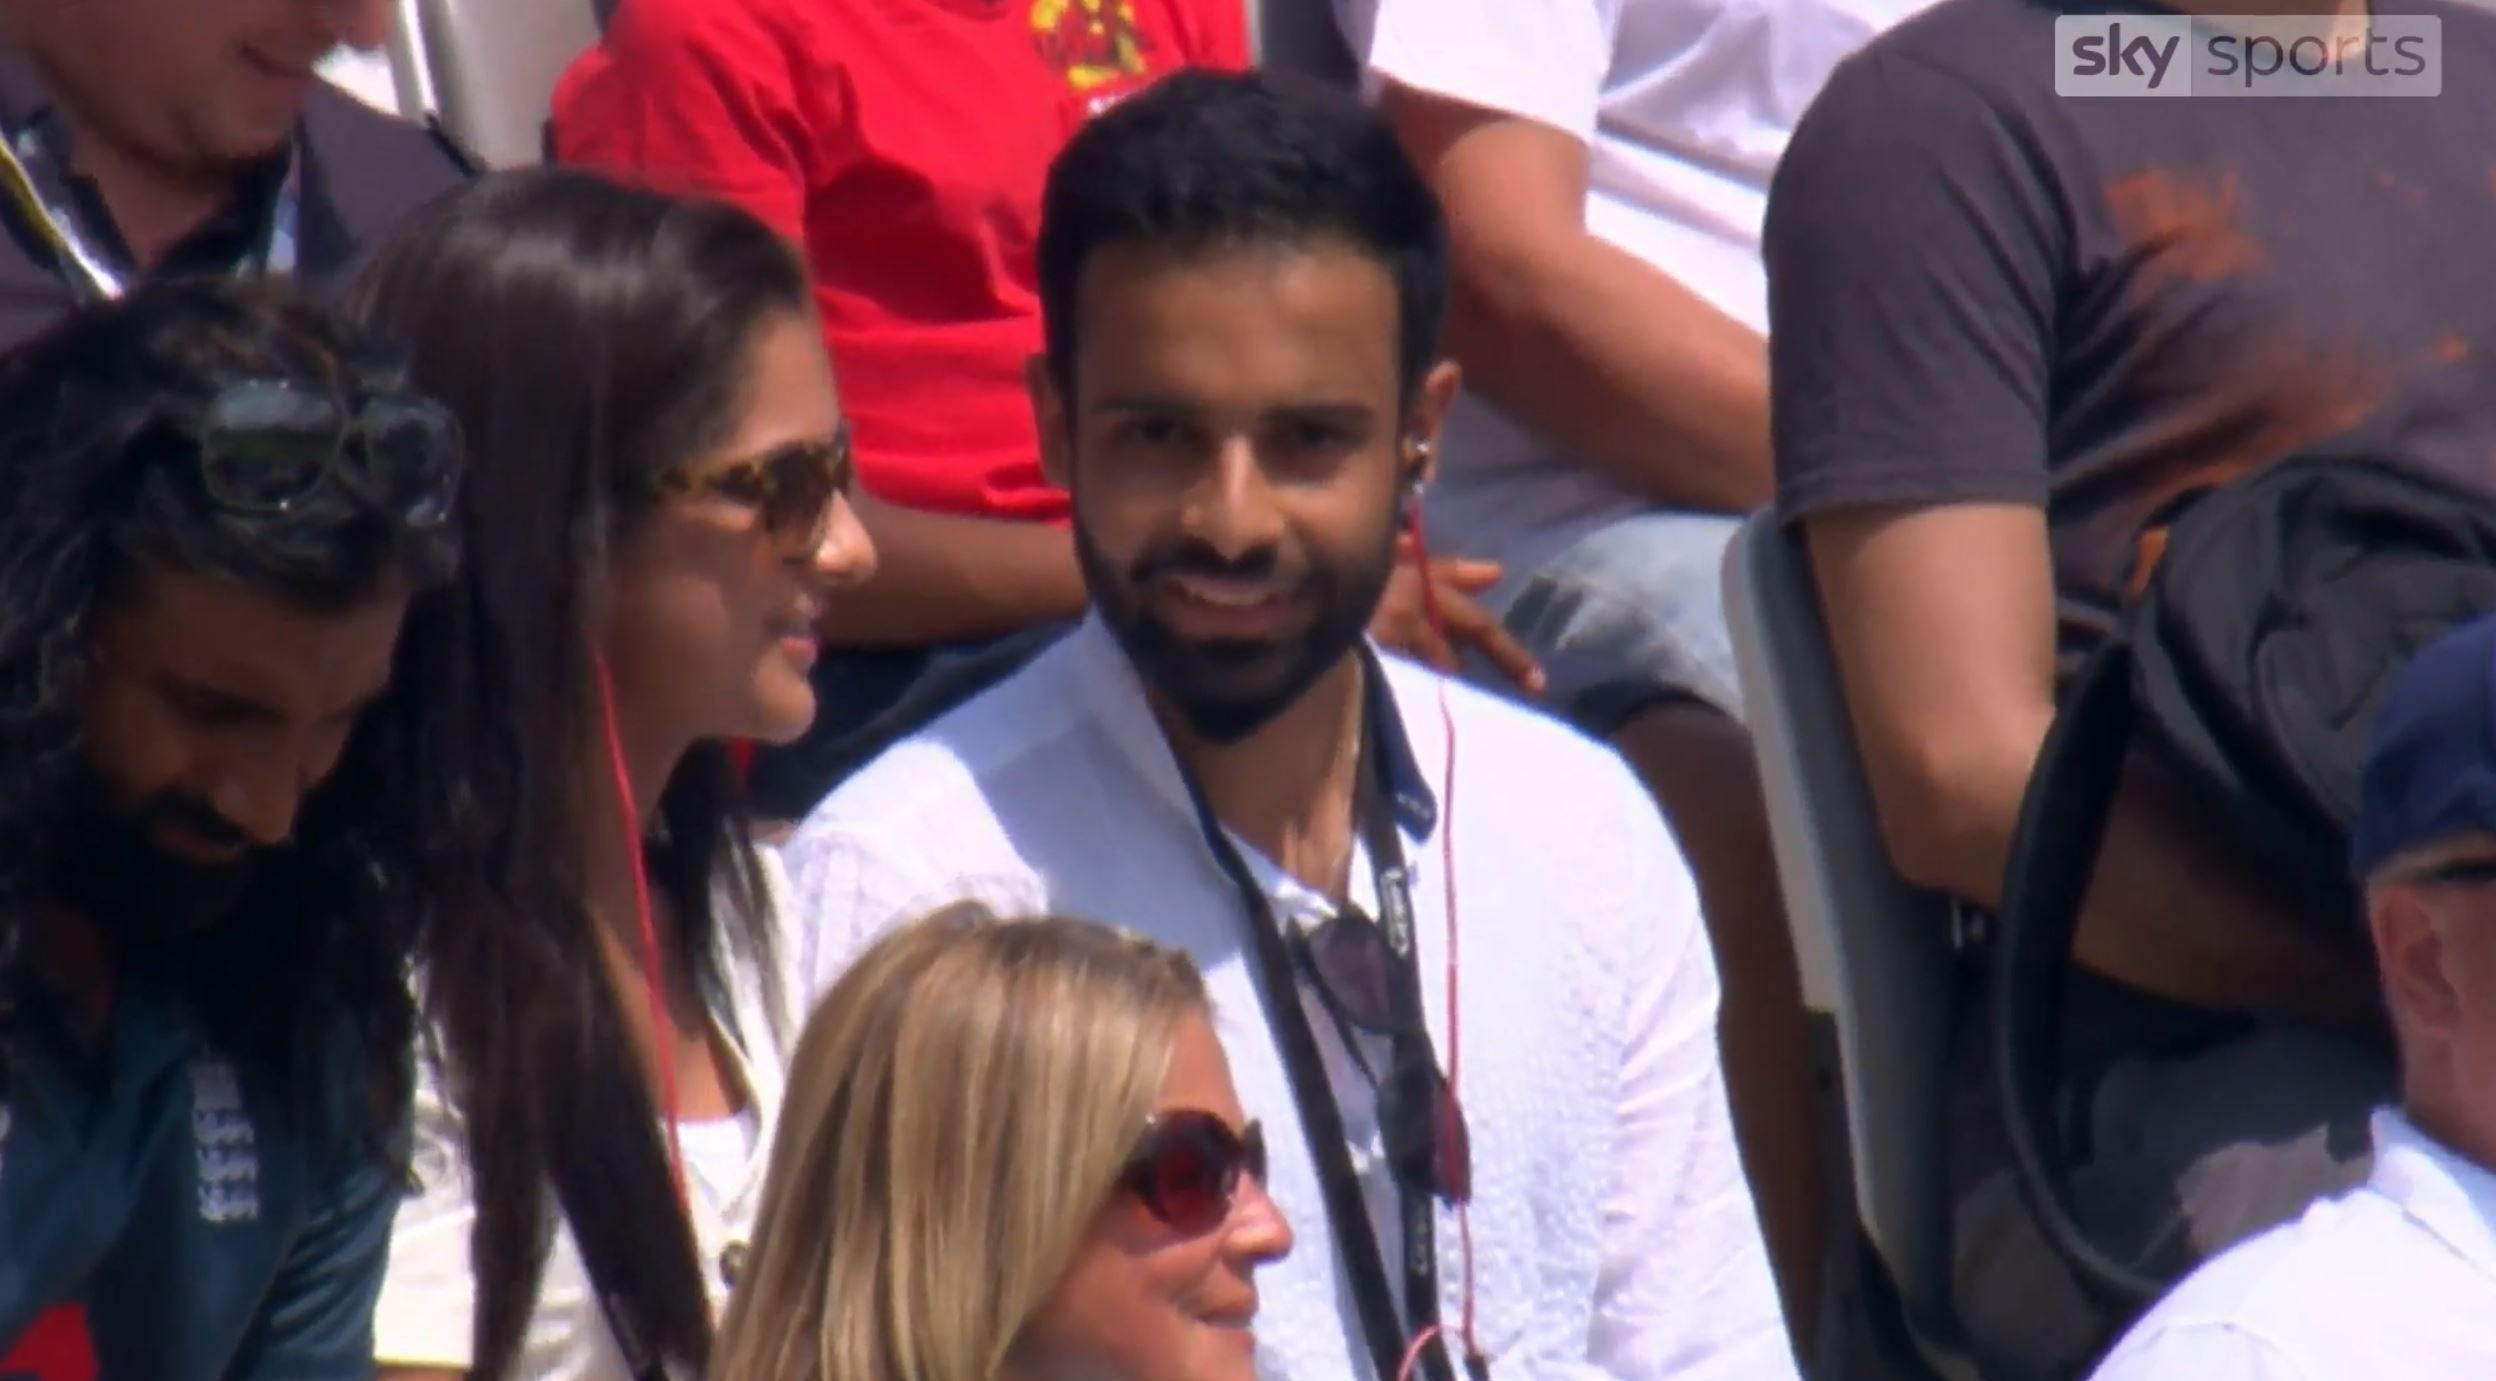 David Lloyd began chatting to Charan Gill and Pavan Bains while they listened to the cricket commentary